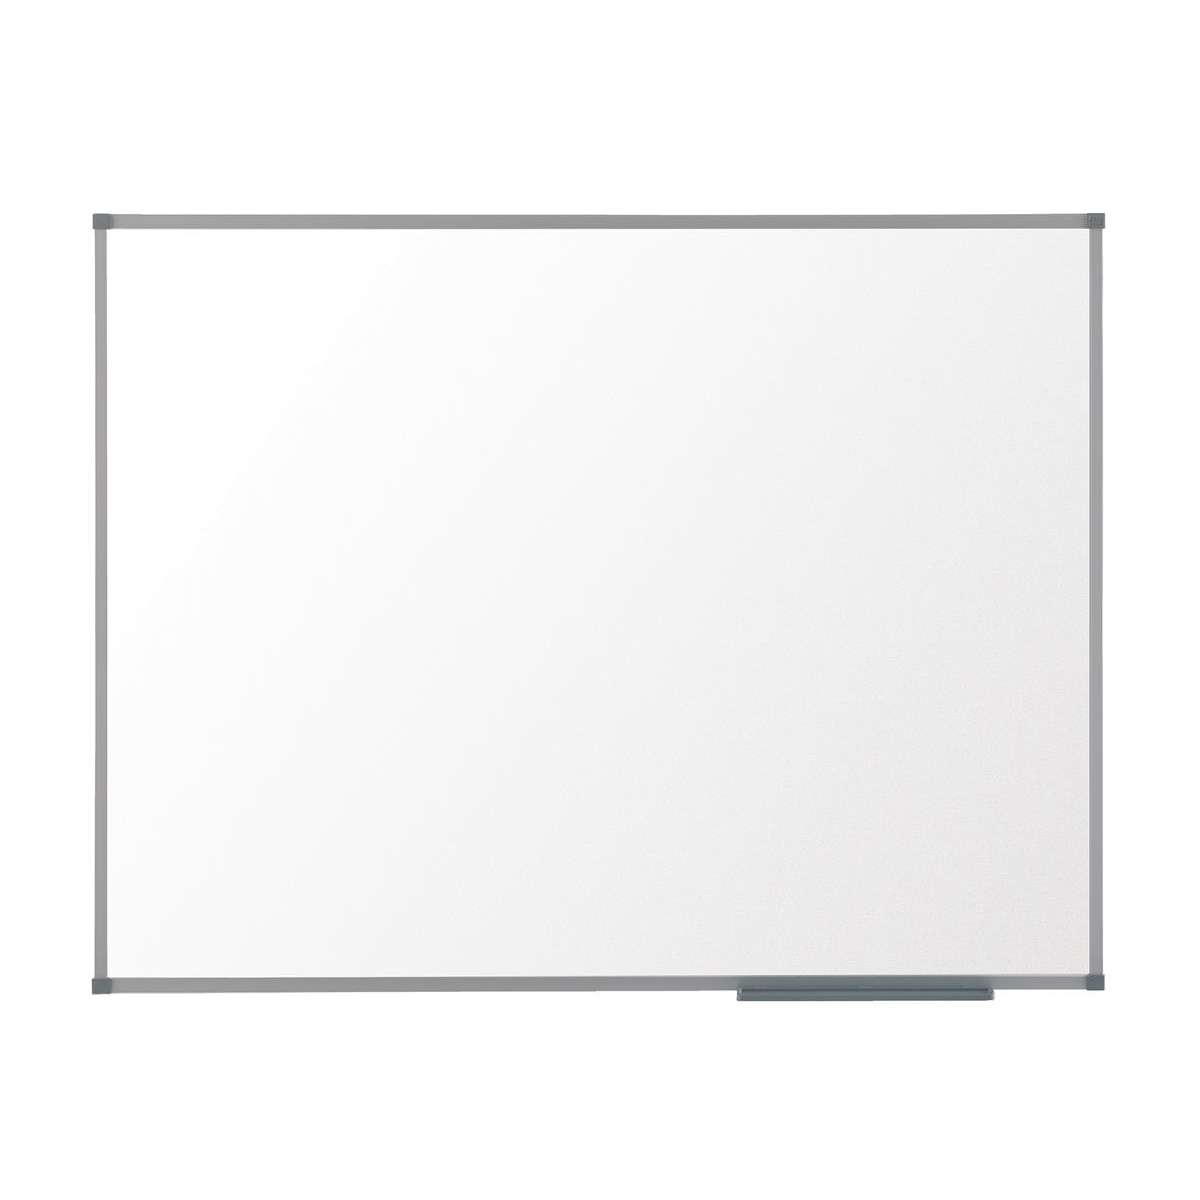 Nobo Basic Steel Whiteboard Magnetic Fixings Included W1800xH1200mm White Ref 1905213